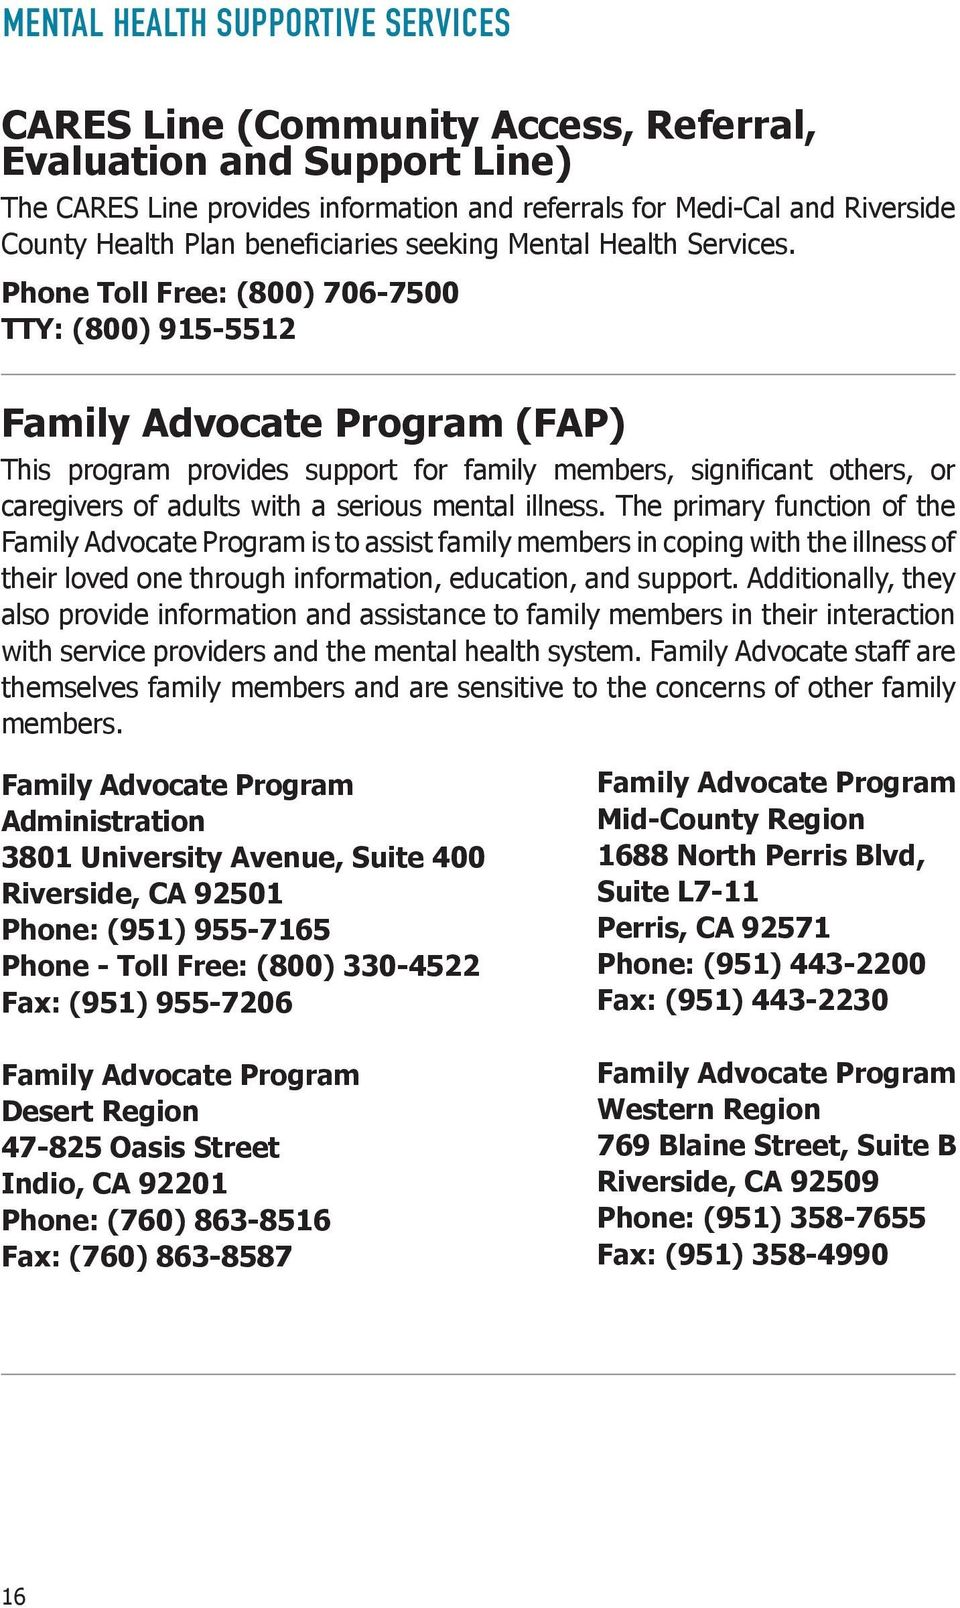 Phone Toll Free: (800) 706-7500 TTY: (800) 915-5512 Family Advocate Program (FAP) This program provides support for family members, significant others, or caregivers of adults with a serious mental